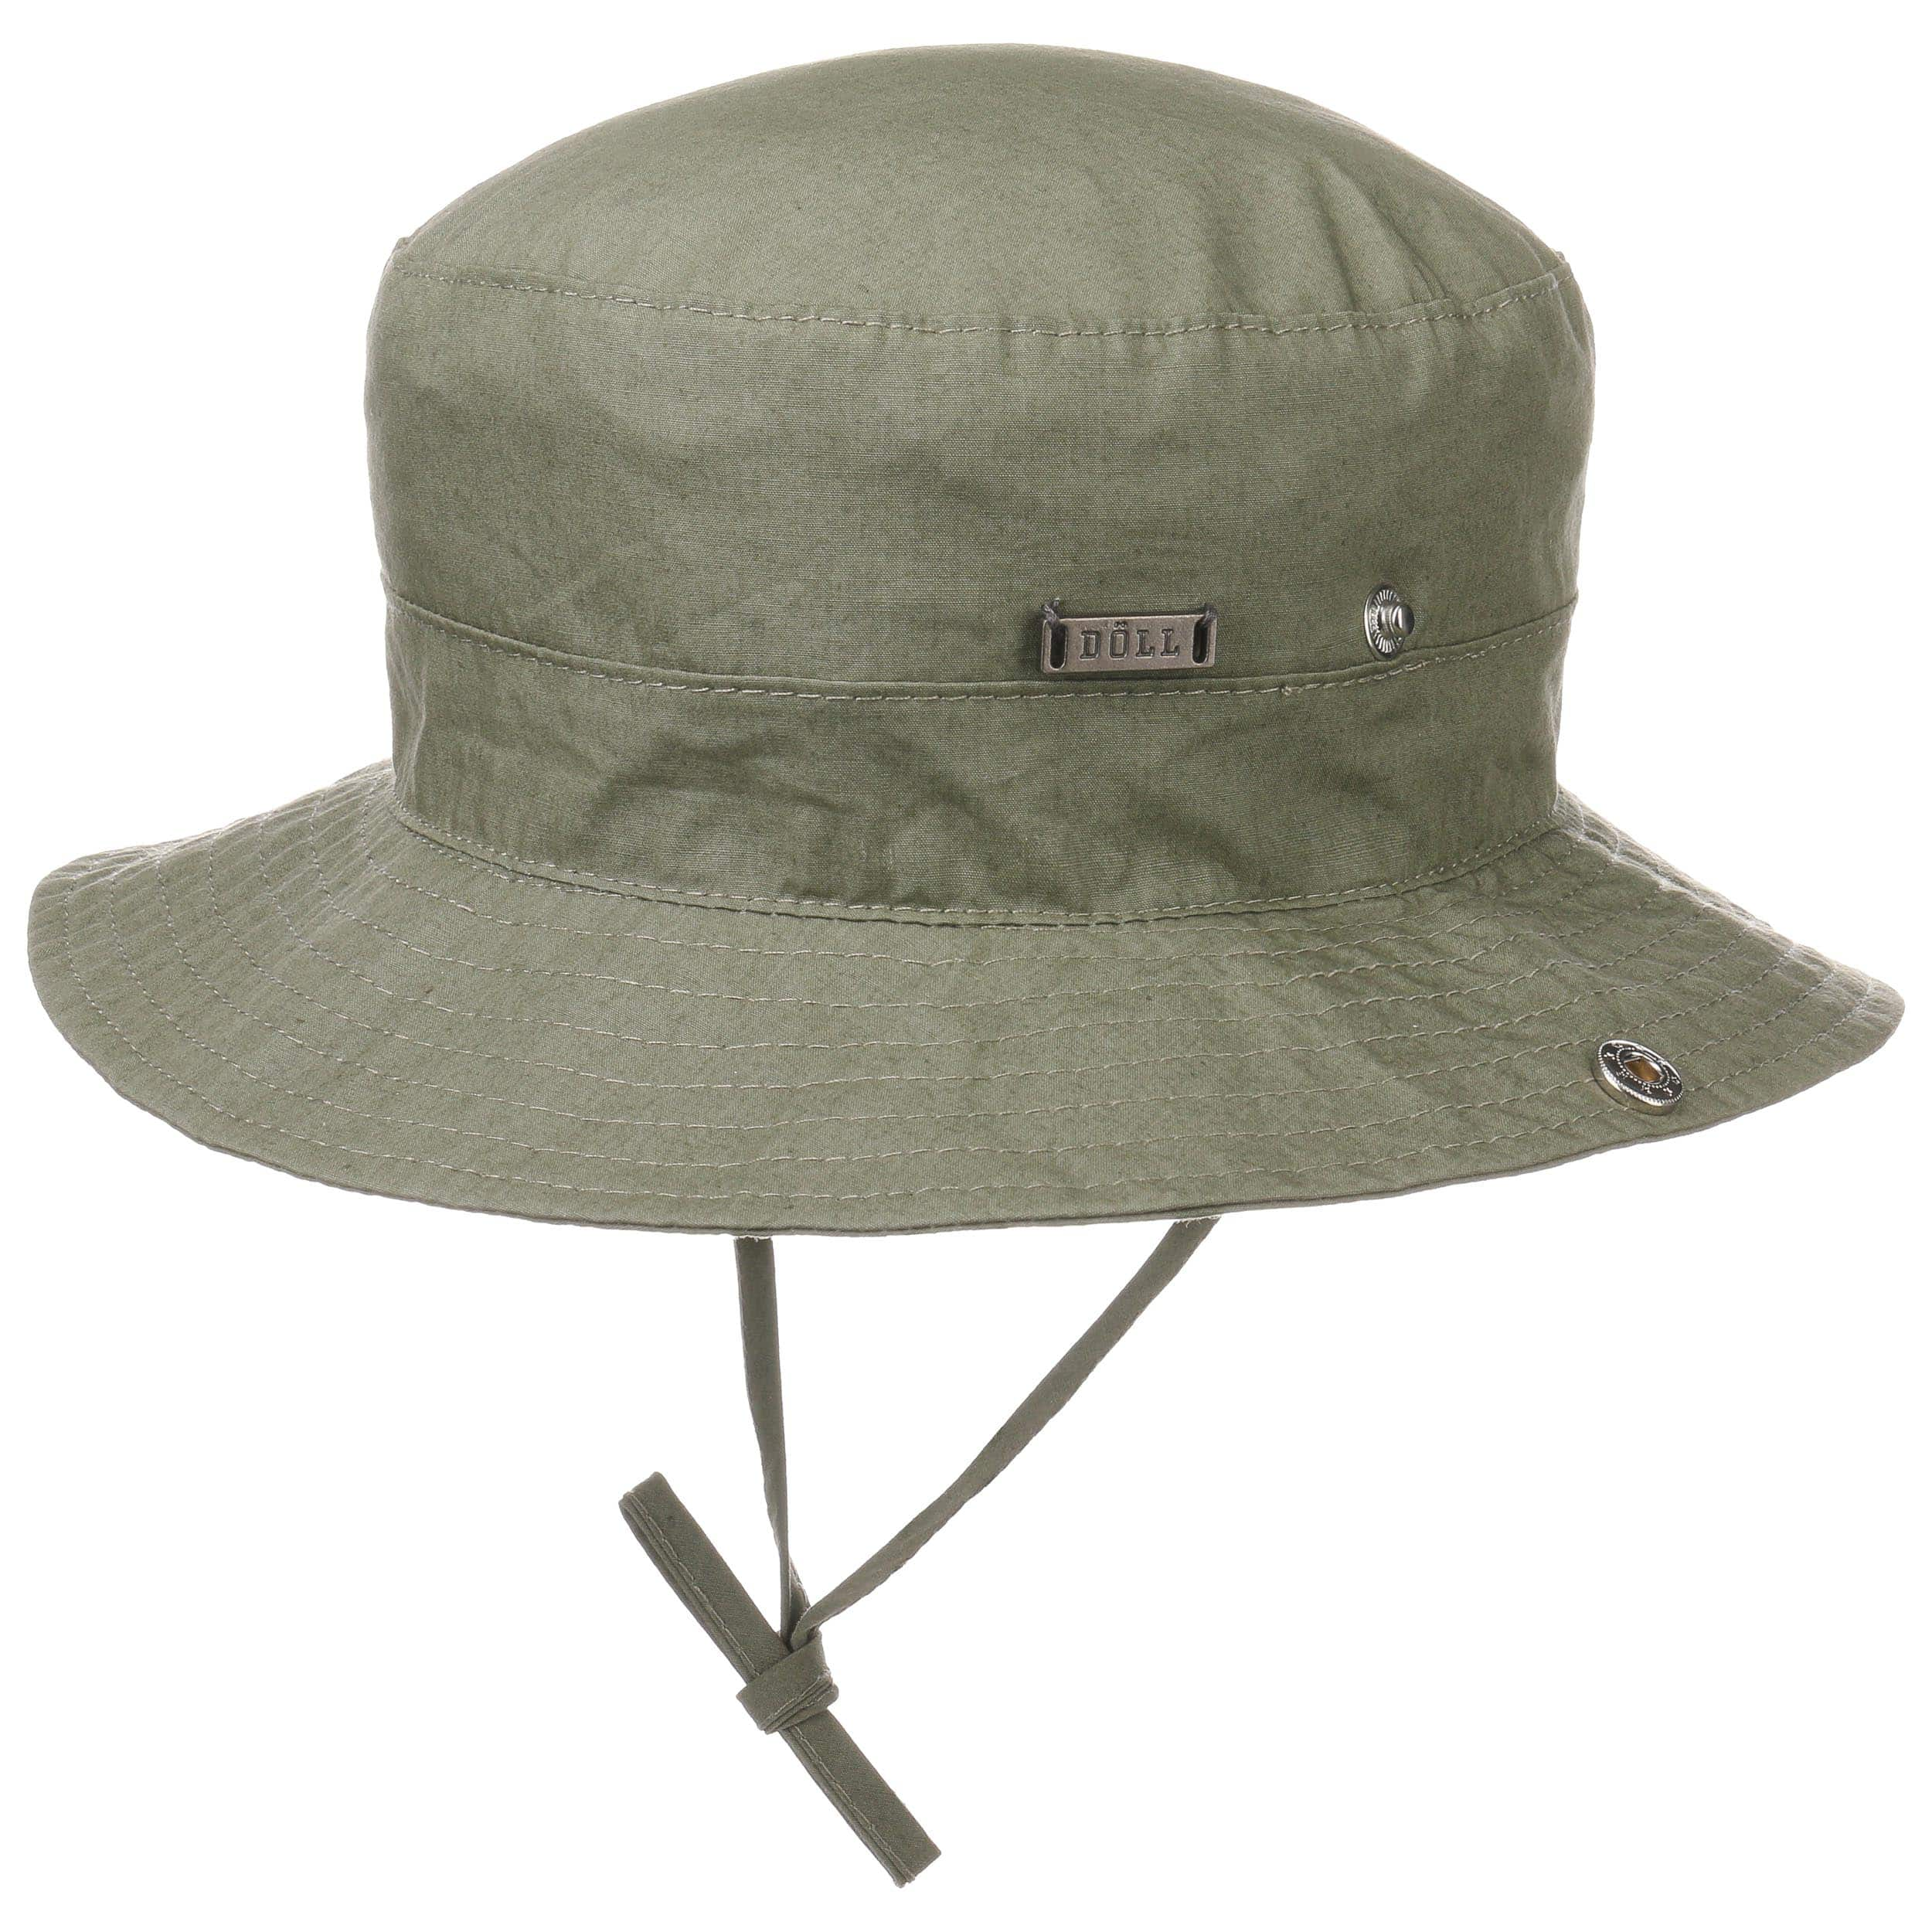 8ab3ad45 ... Kids Safari Hat with Neck Drape by Döll - light olive 8 ...